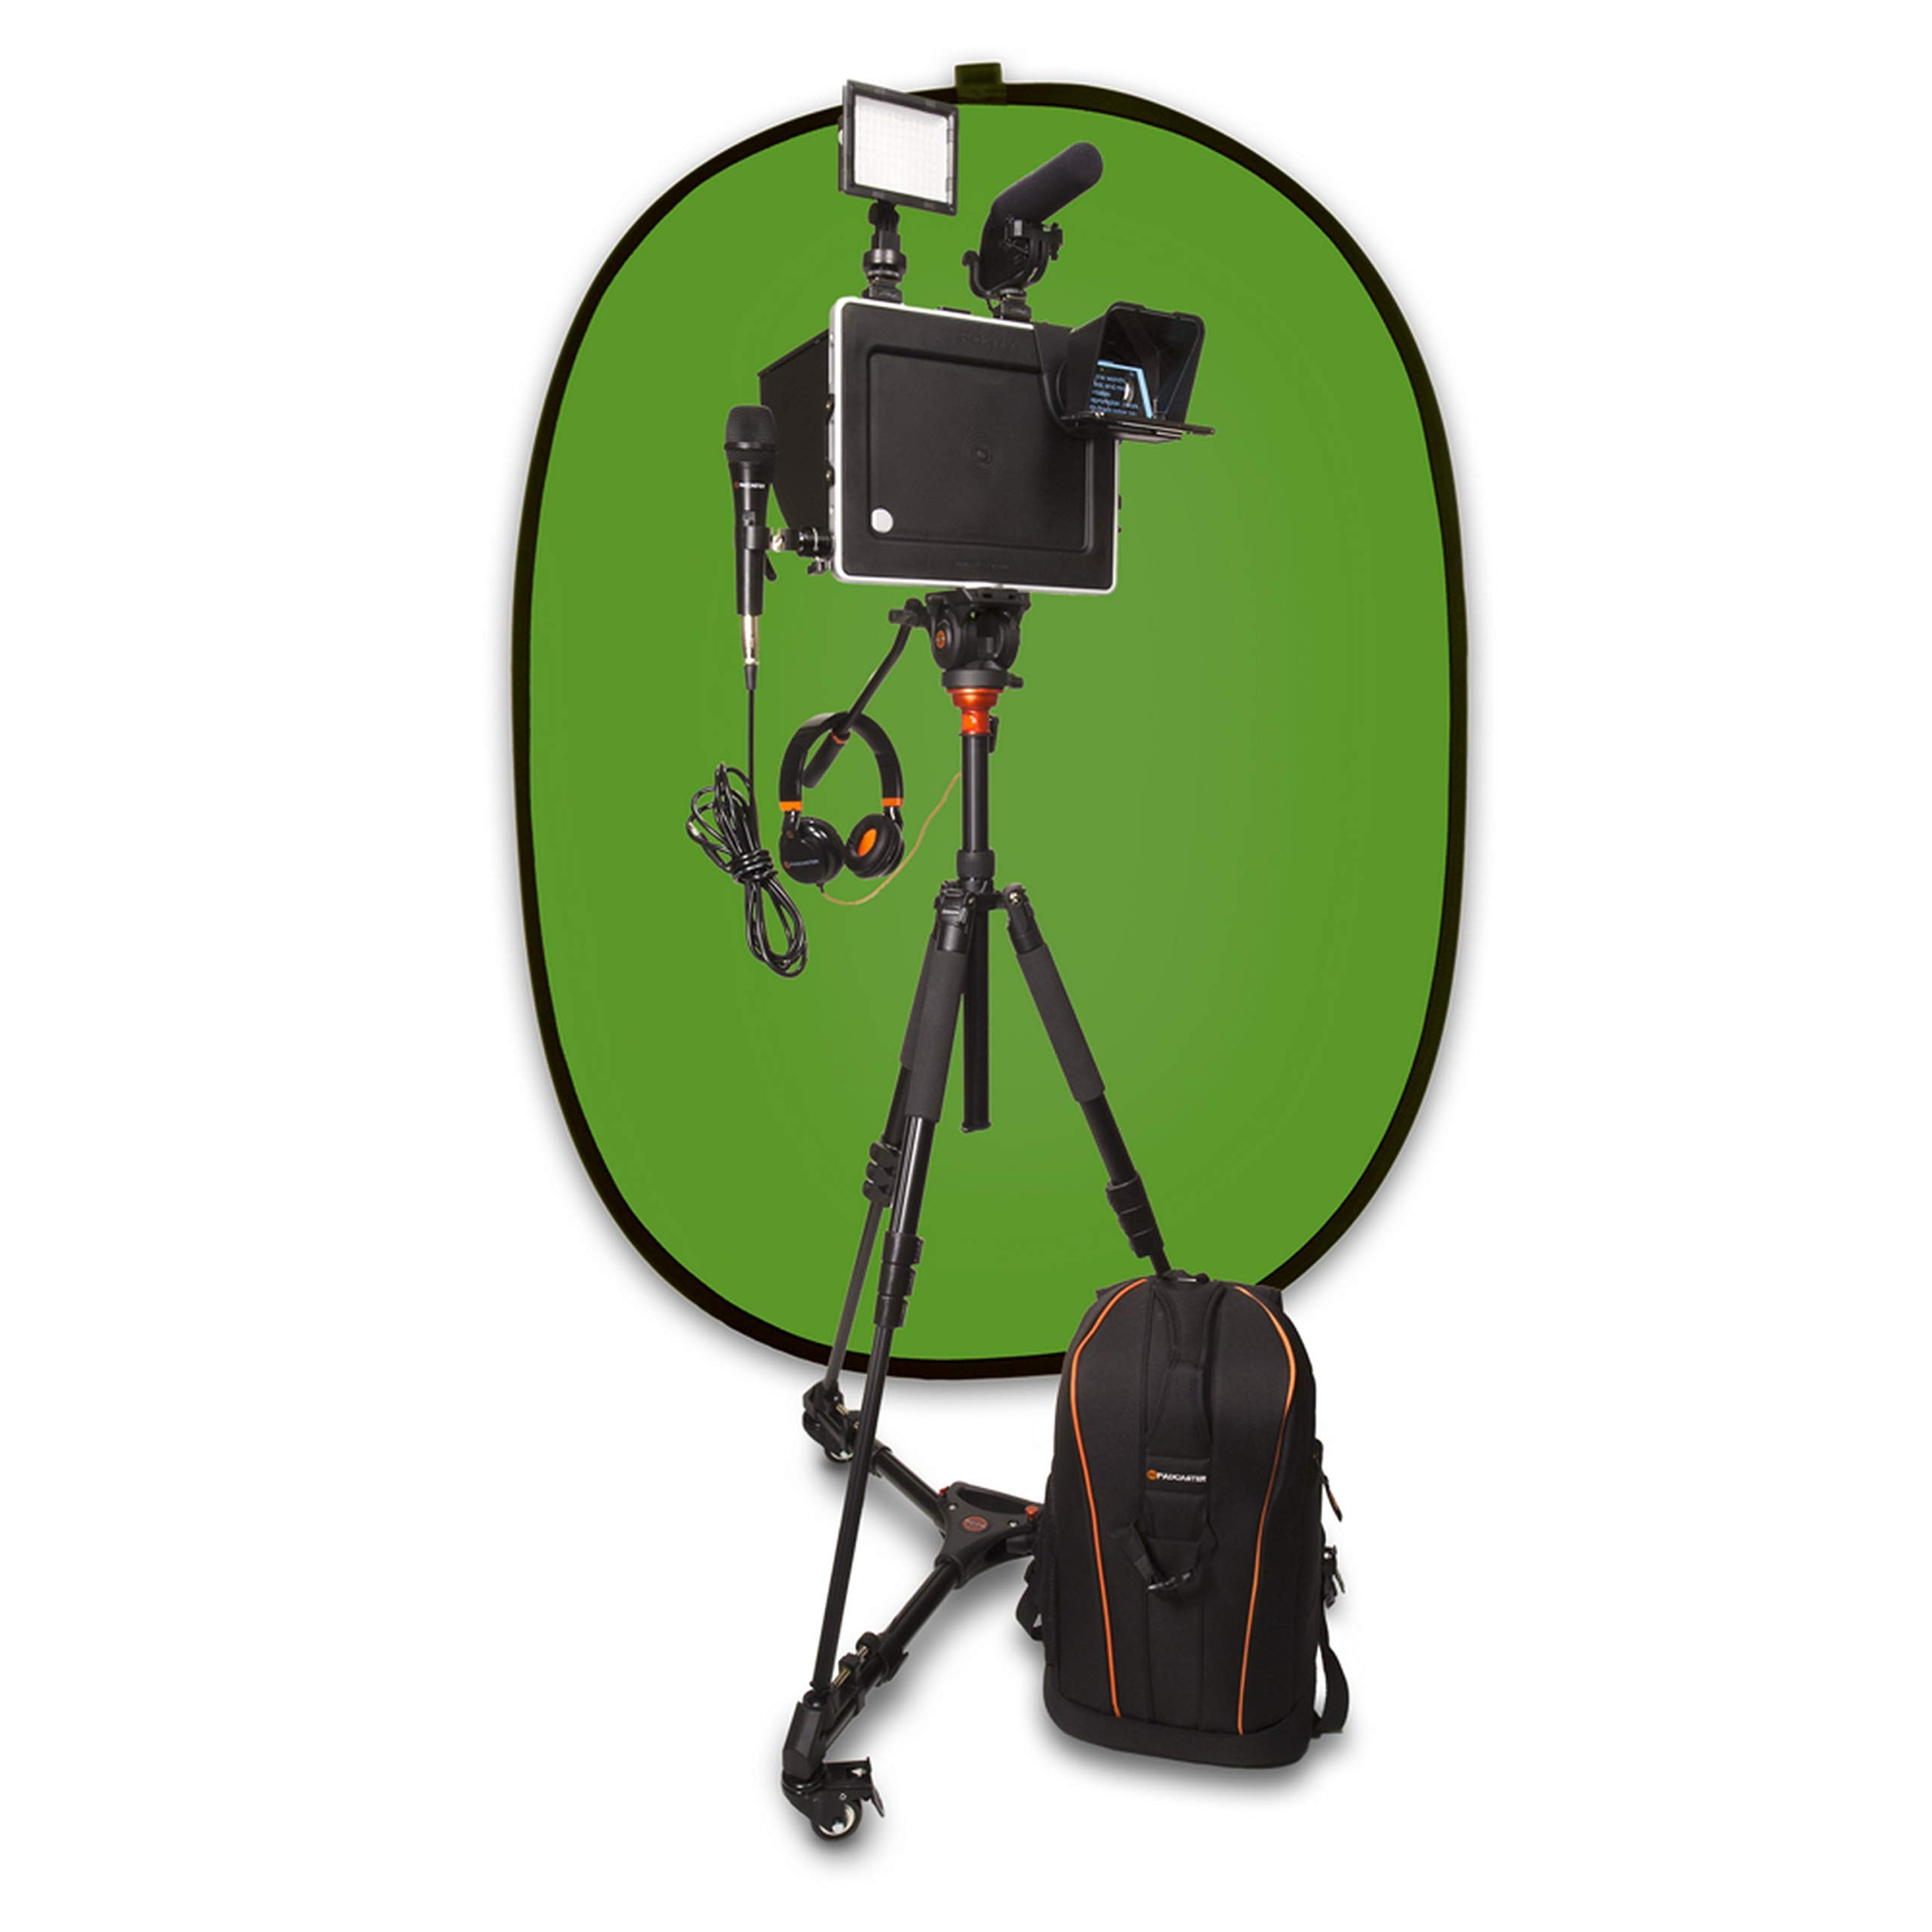 Padcaster Studio Mobile Production Suite, Compatible with iPads Air, Air 2, Pro 9.7 5th and 6th Generation